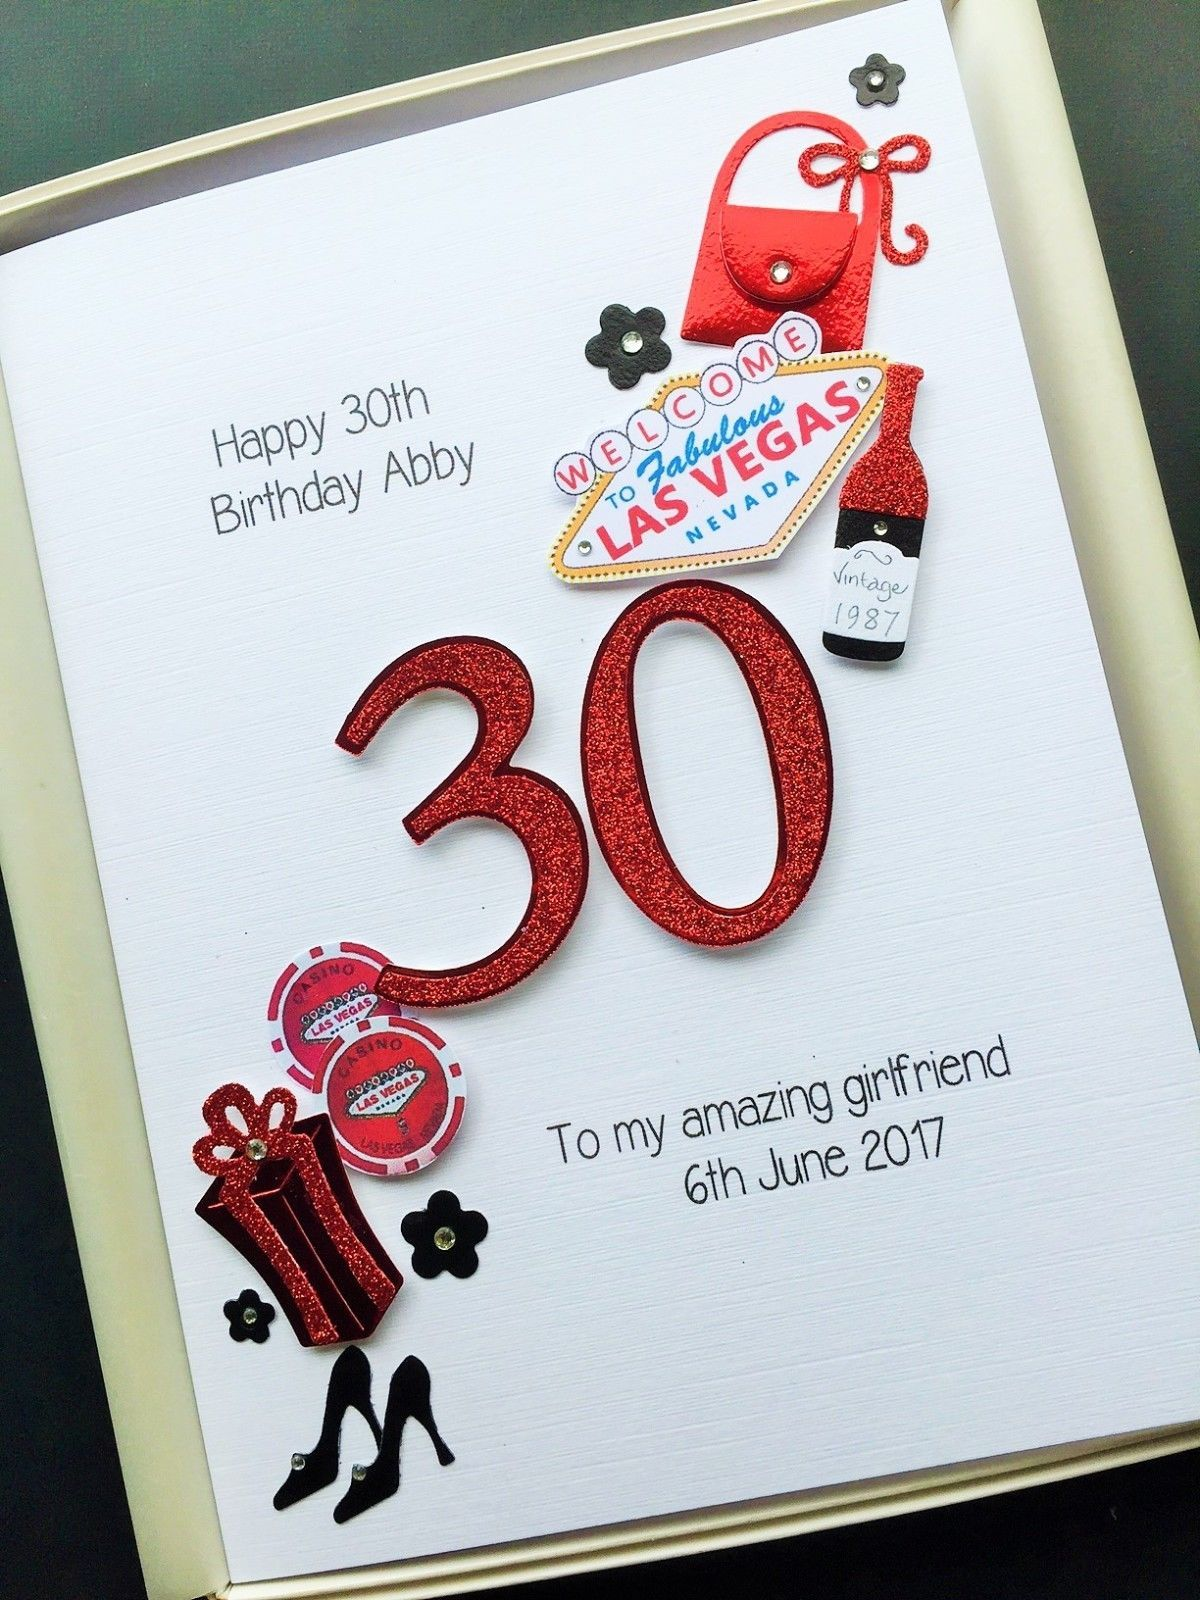 Cards Stationery Ebay Home Furniture Diy Personalised Gifts Handmade 30th Birthday Cards Cards Handmade